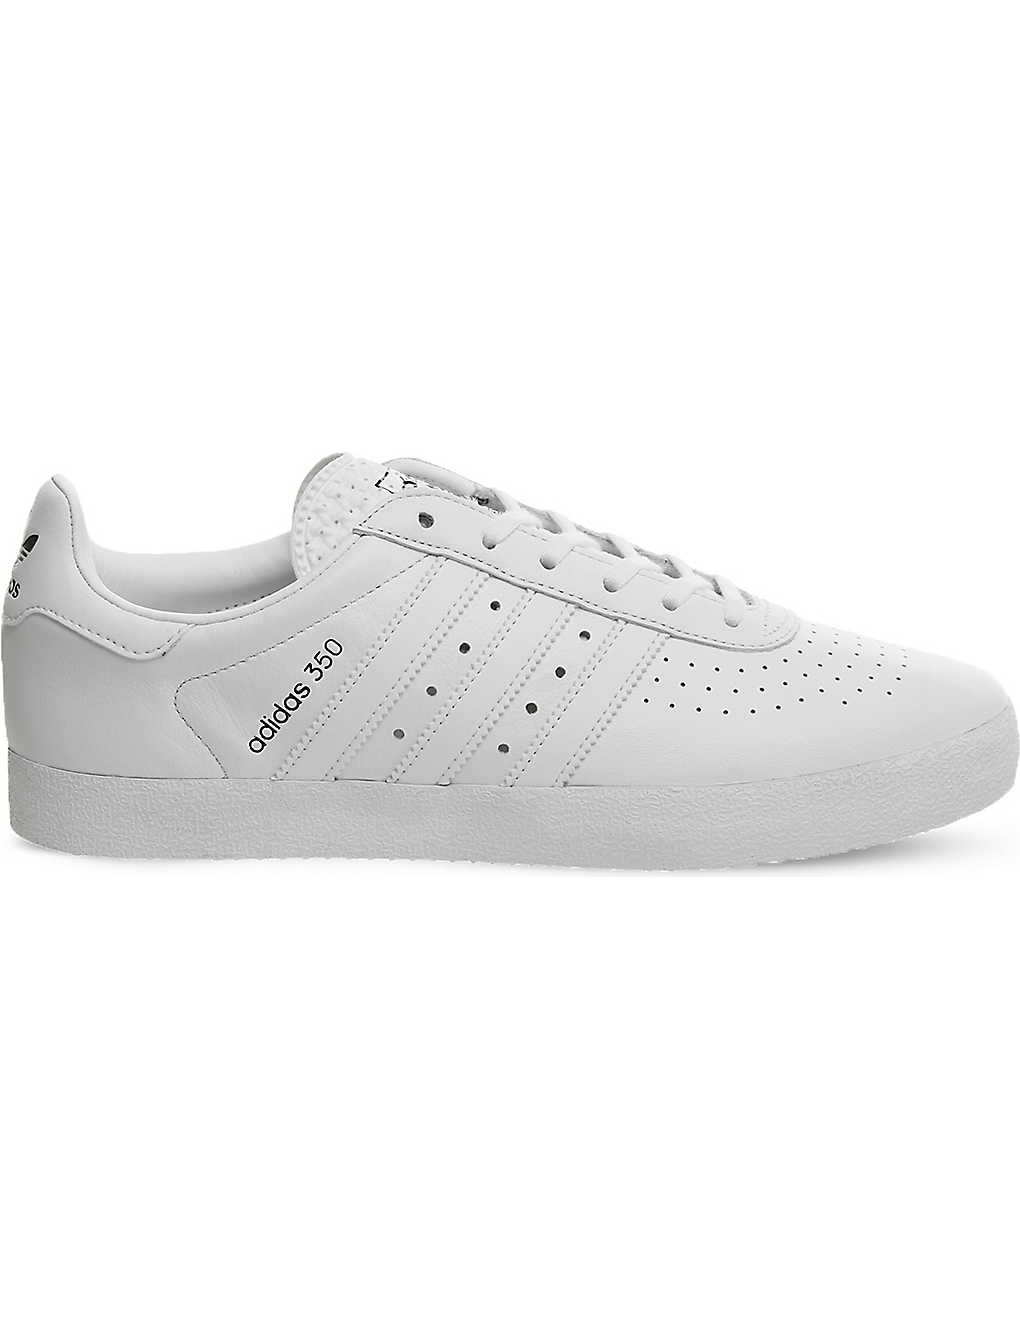 3ddc722b04f0d6 ADIDAS - 350 leather trainers